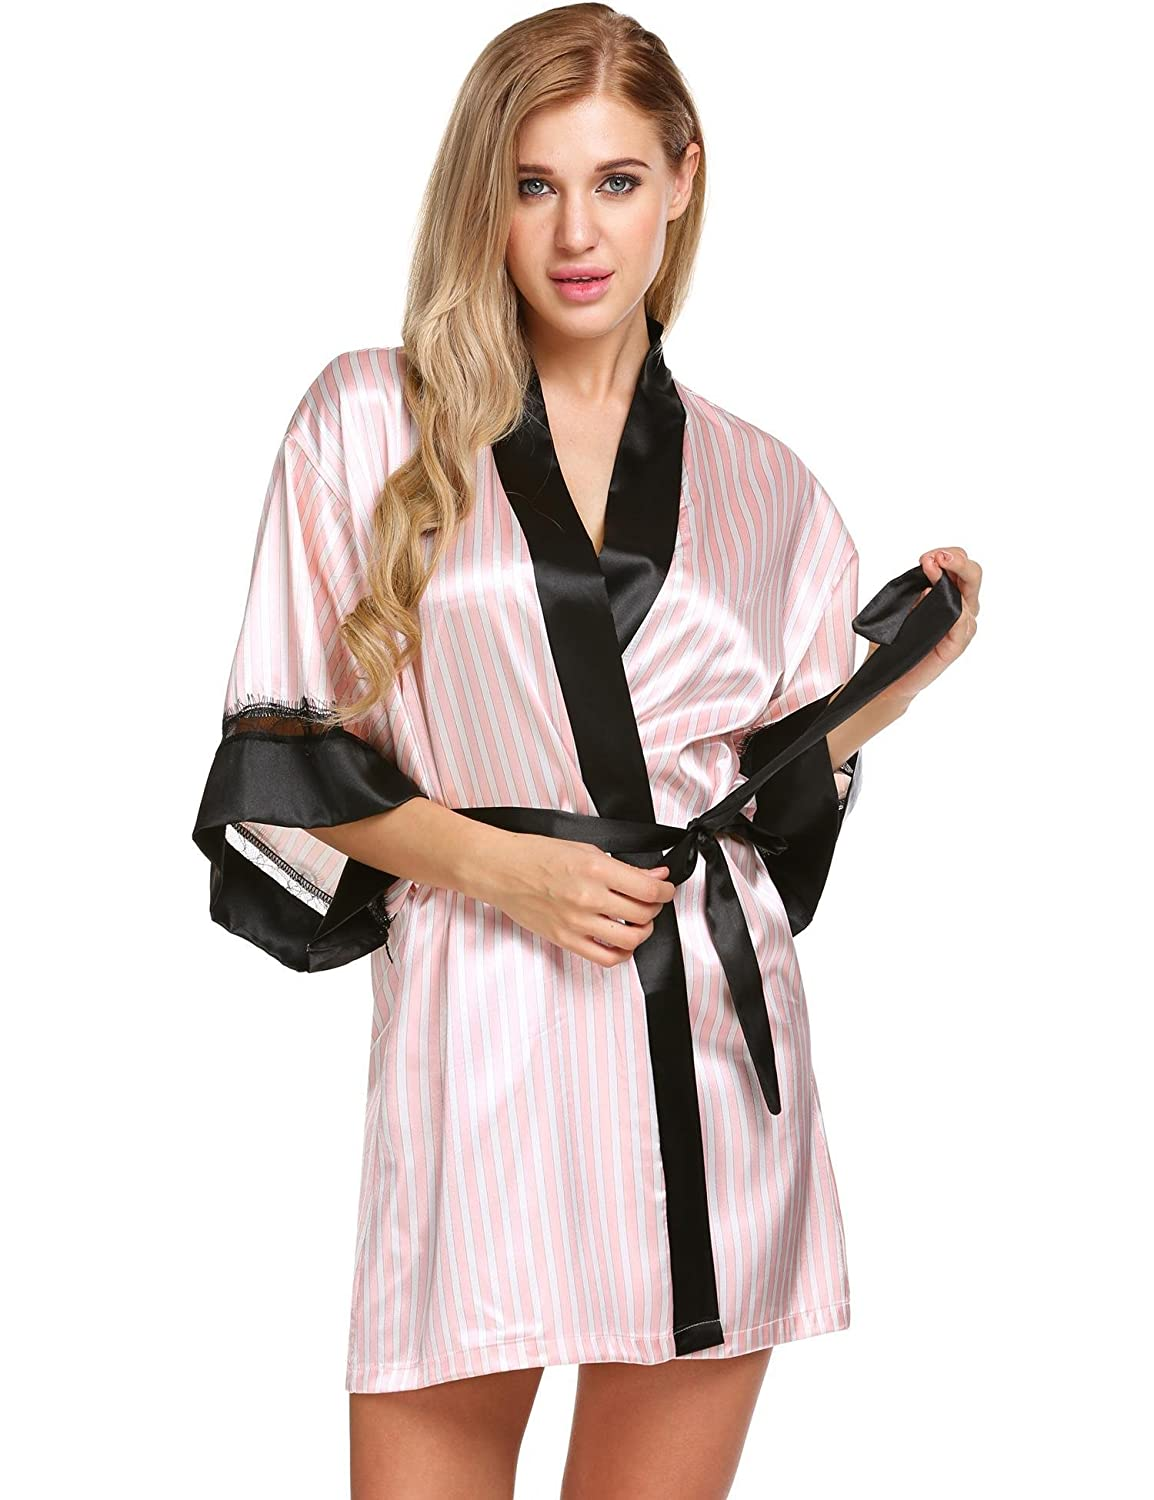 Ekouaer Womens Satin Bathrobes Short Kimono Robe Stripes Bridesmaids Lace Contrast *EKK007929